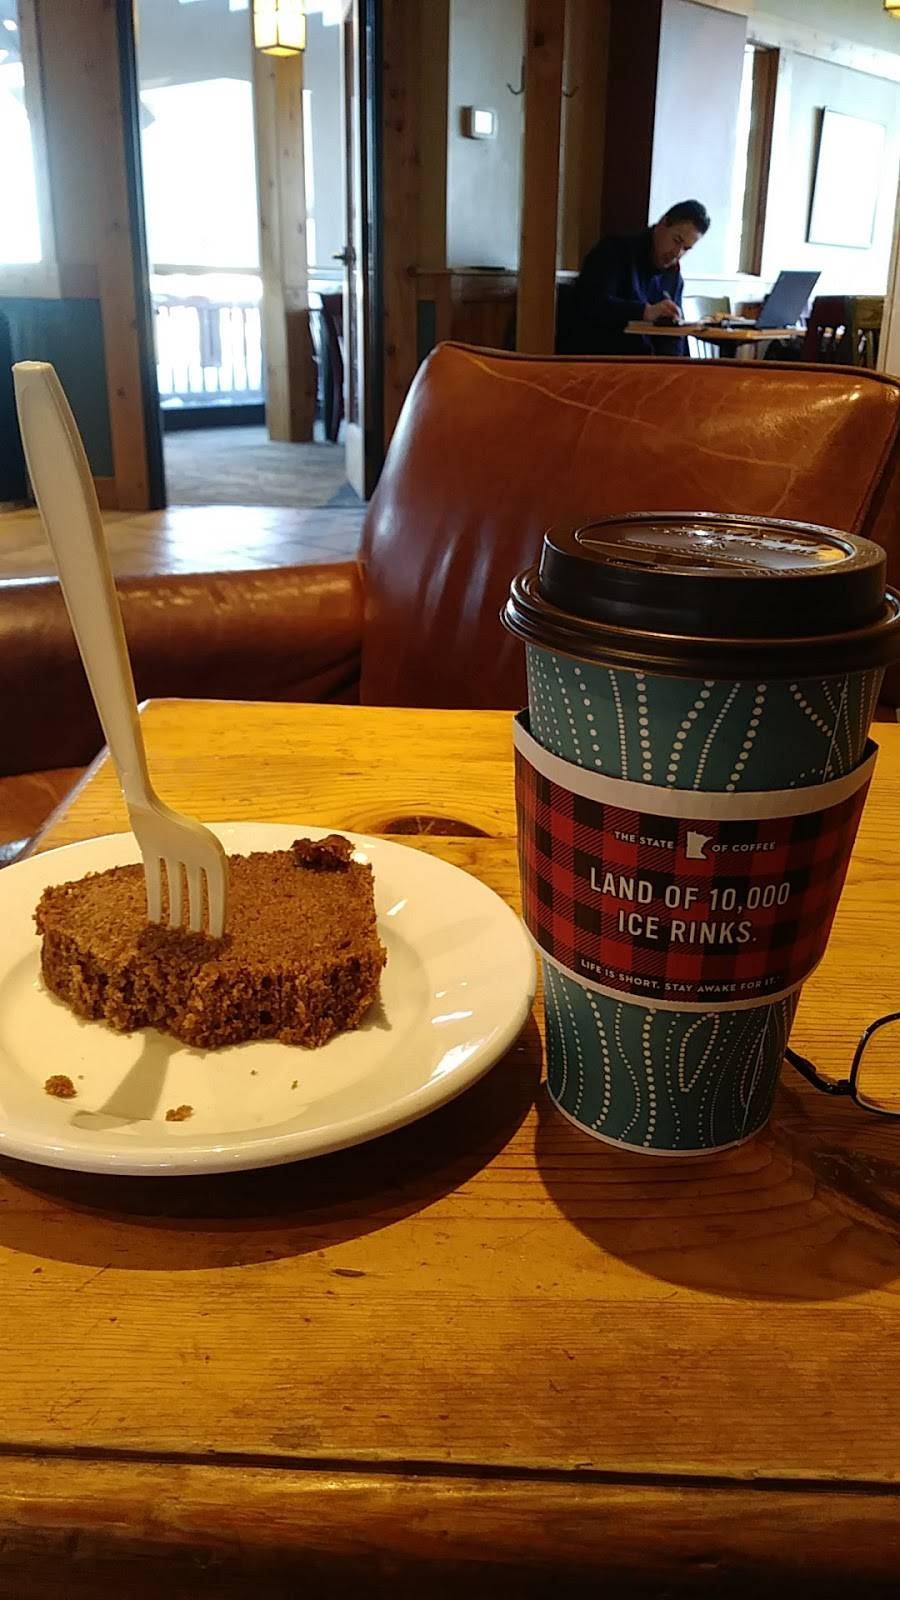 Caribou Coffee | cafe | 3100 White Bear Ave North, Maplewood, MN 55109, USA | 6517797345 OR +1 651-779-7345